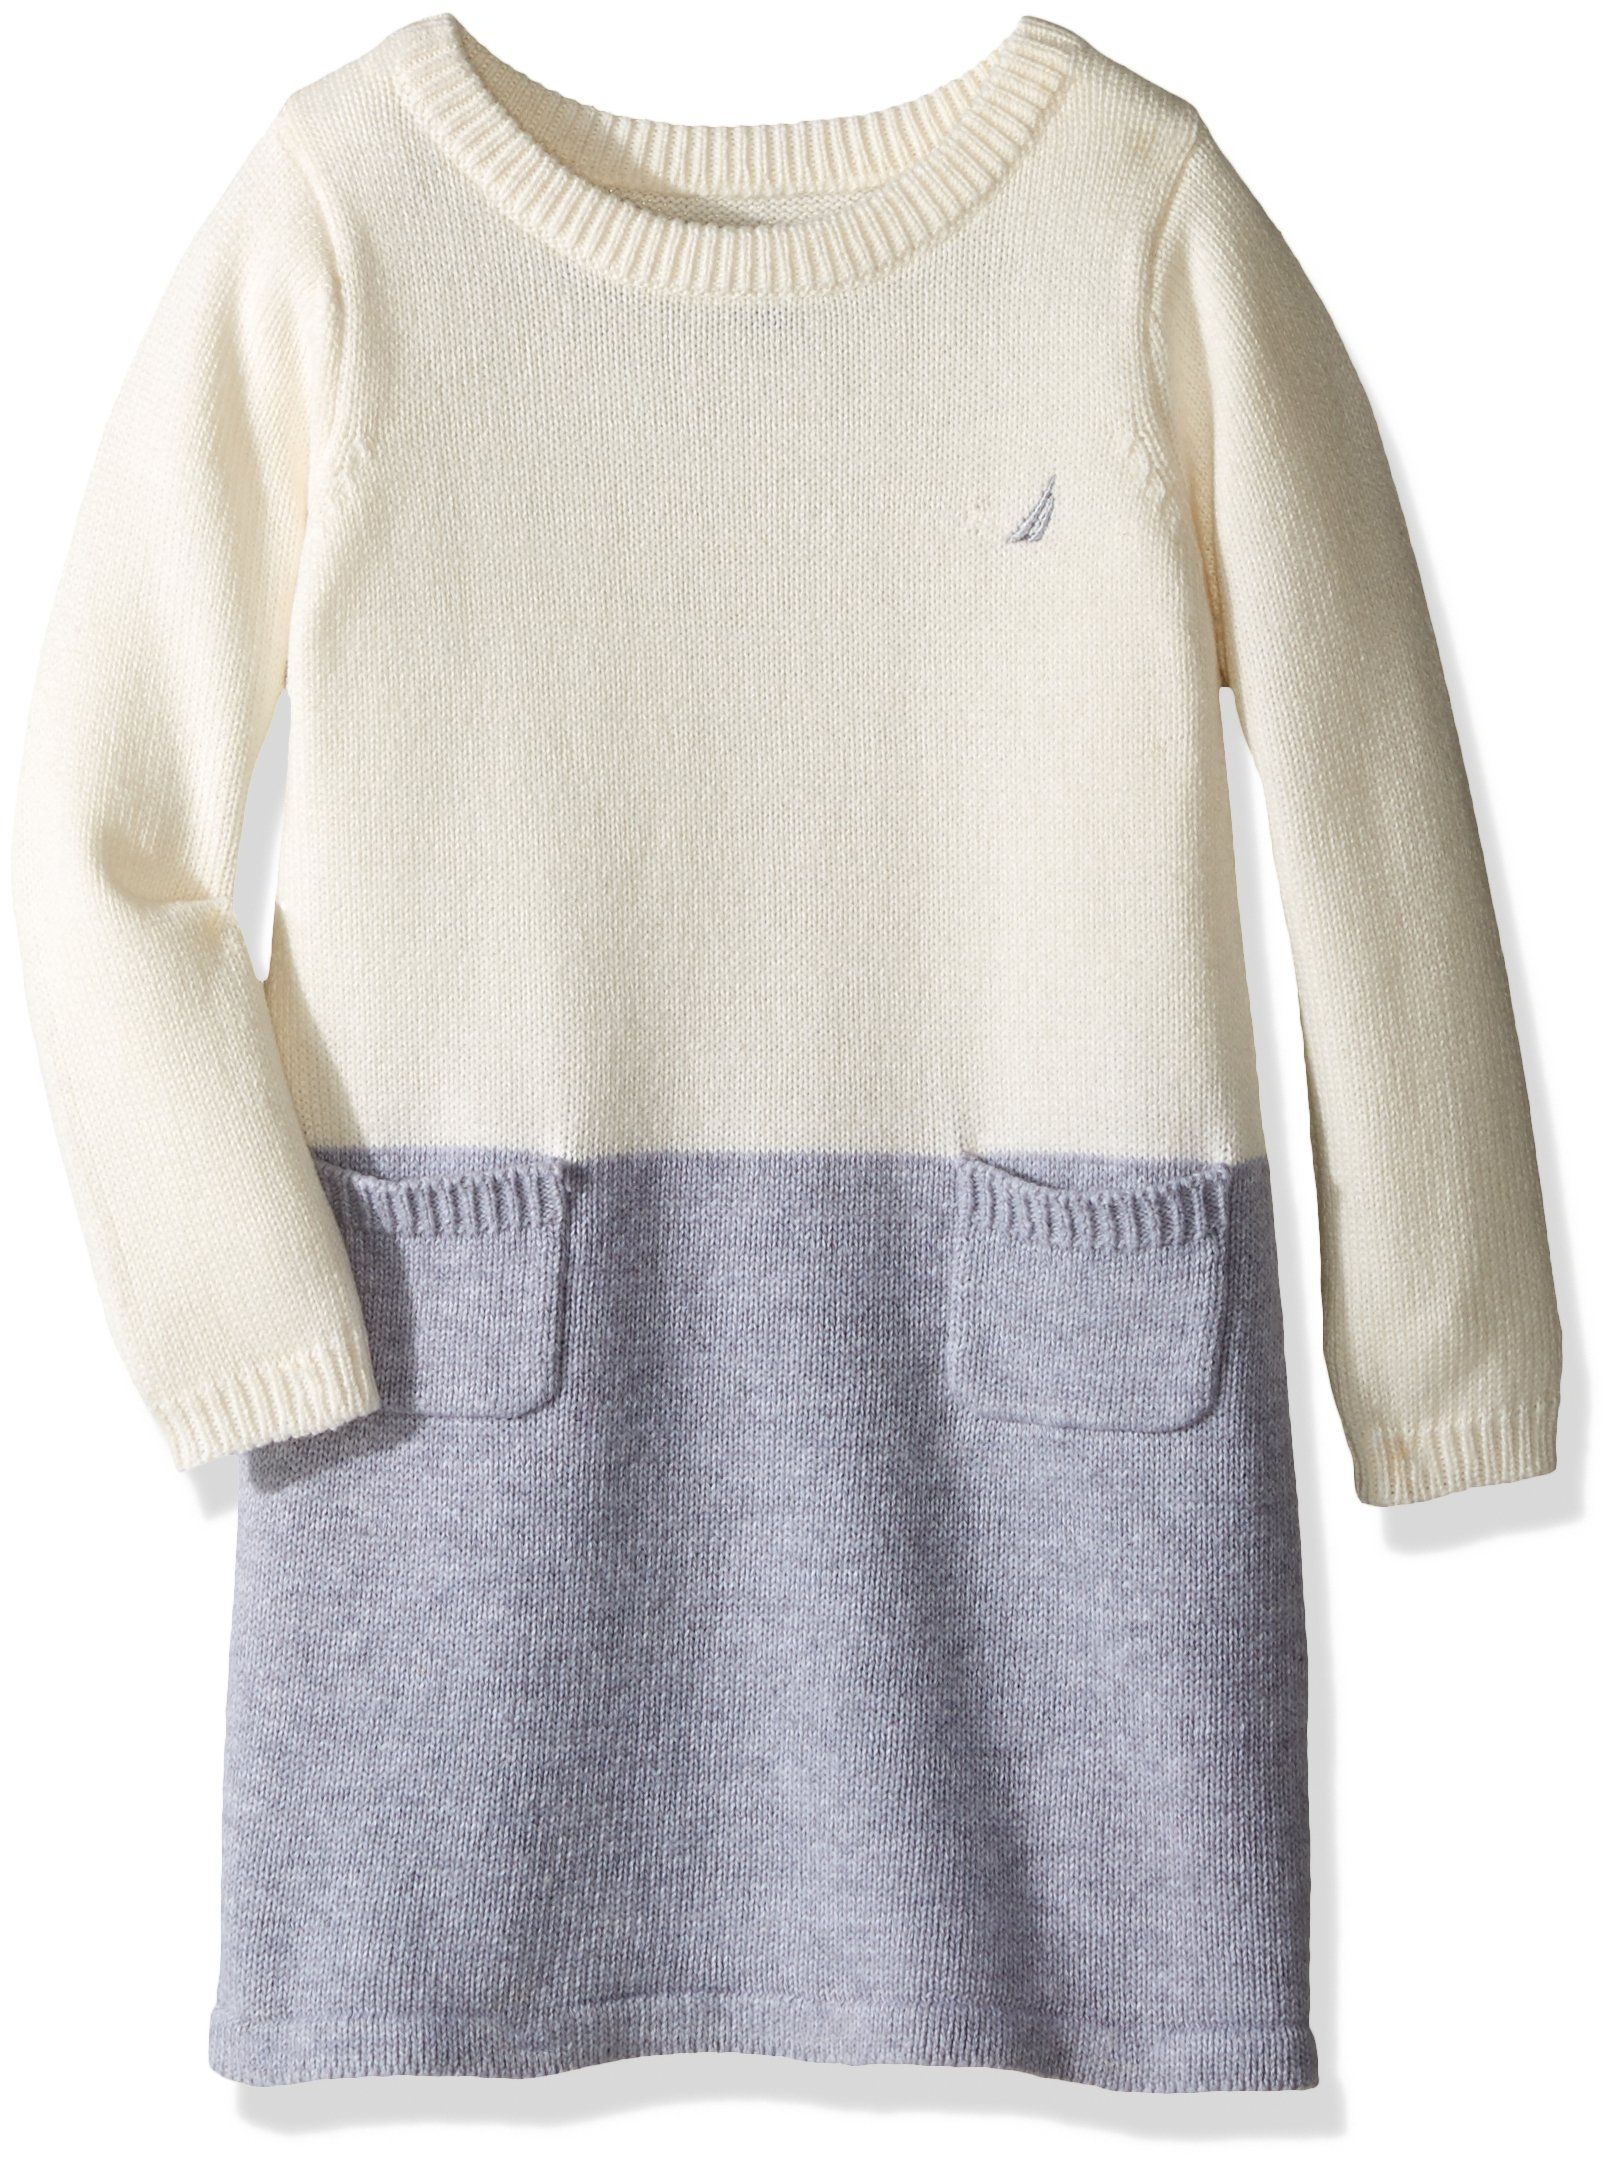 Nautica Little Girls Toddler Colorblock Sweater Dress Cream 3t